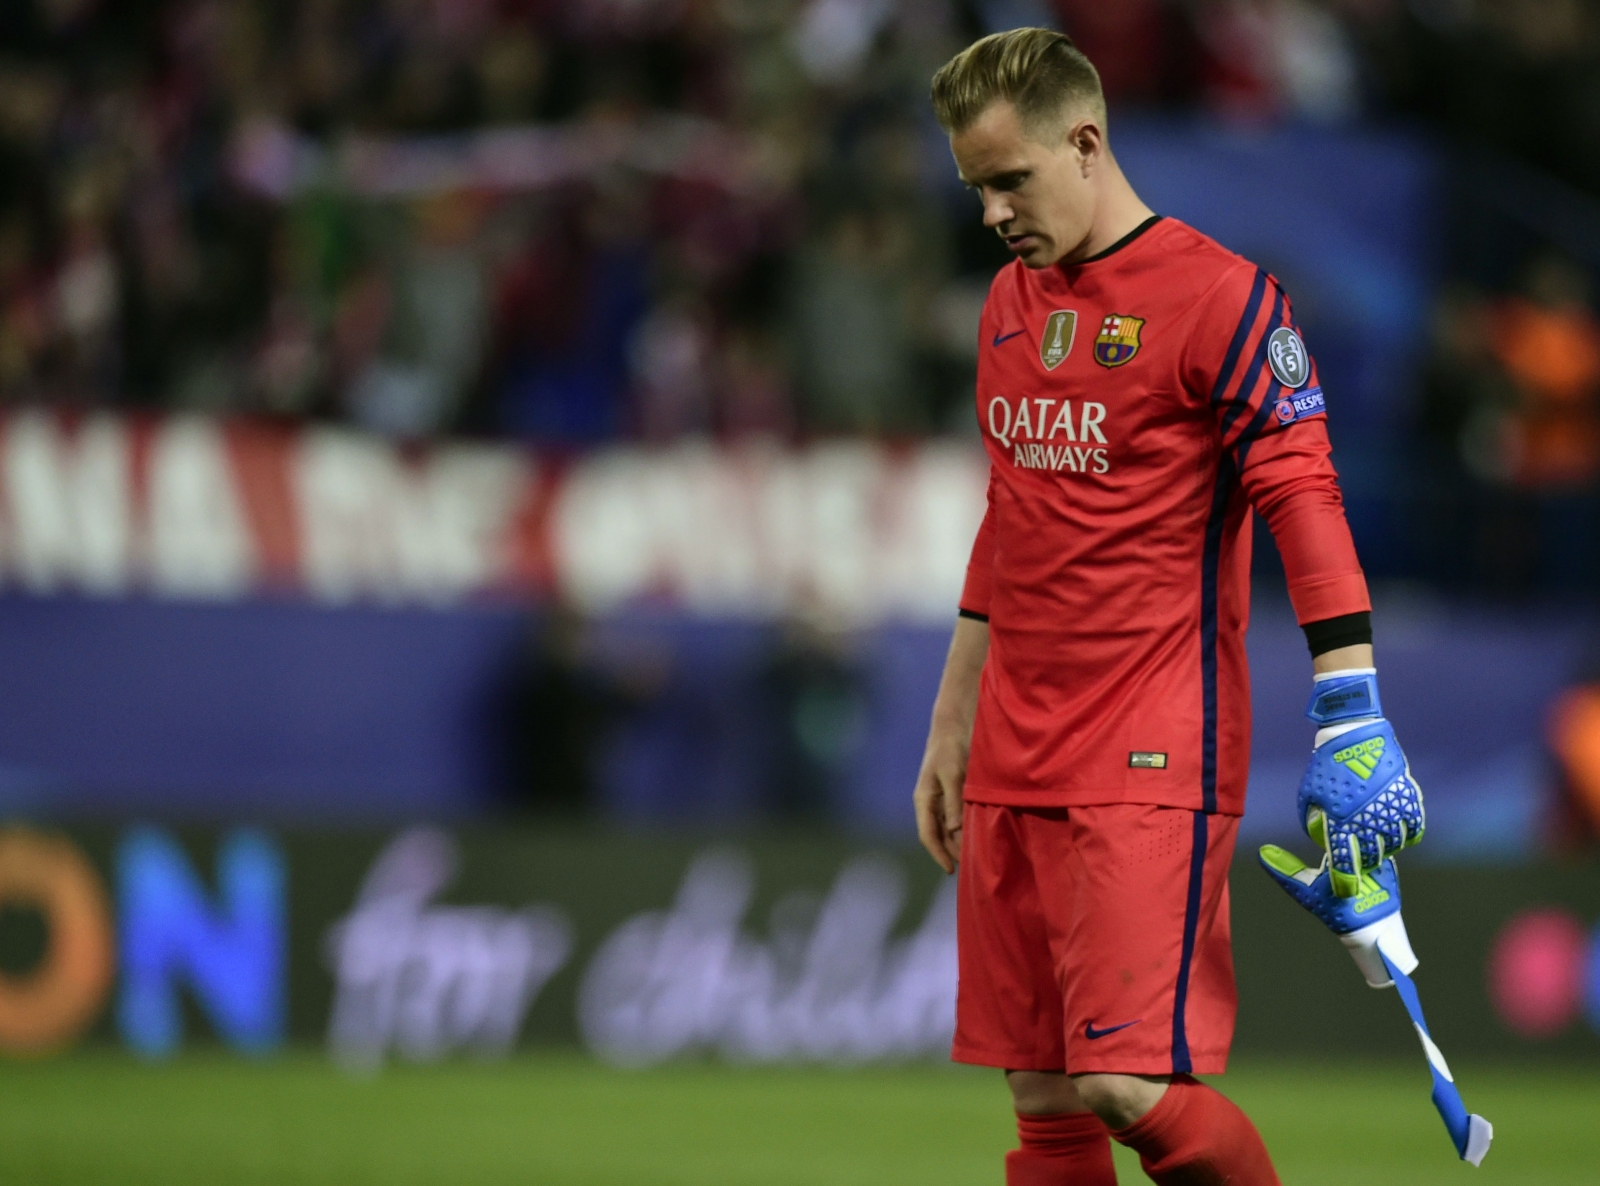 Psg Wallpaper Hd Barcelona Vs Celtic Marc Andre Ter Stegen Returns To 18